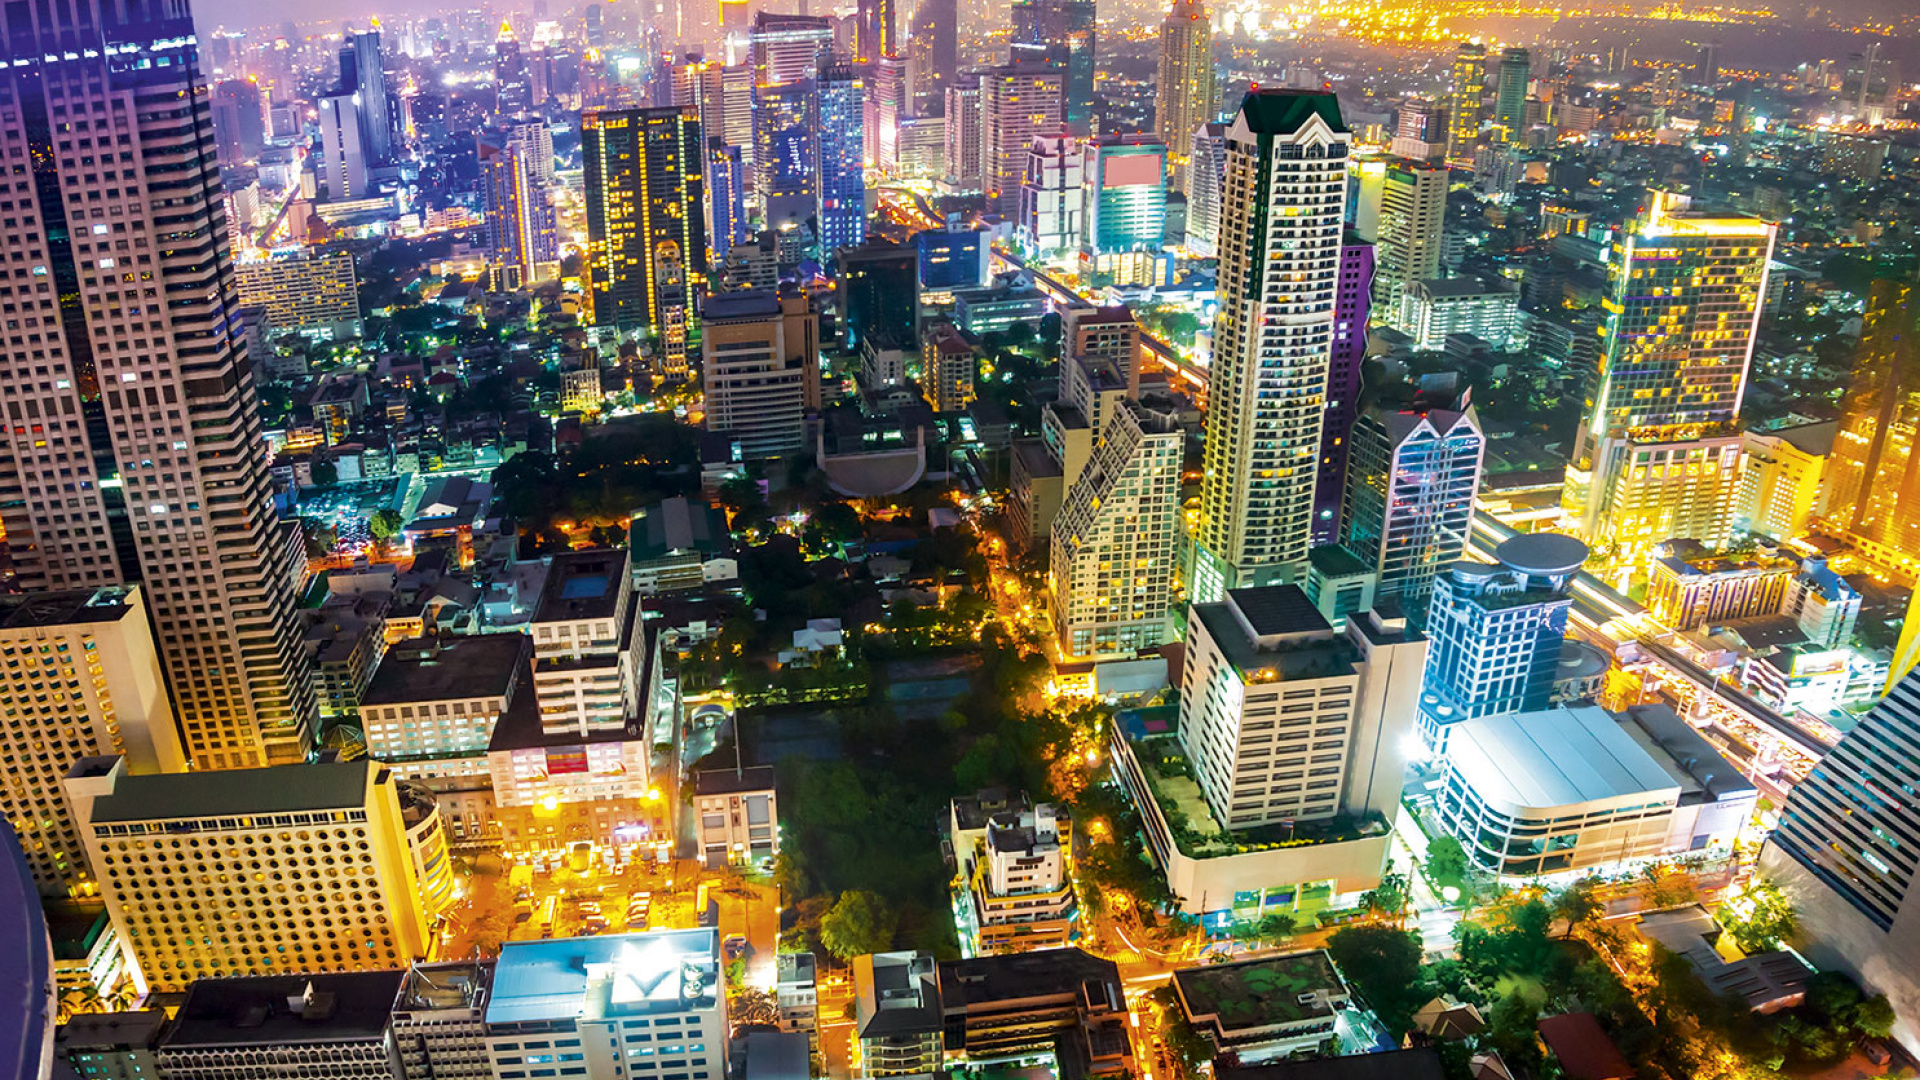 Bangkok at night. Photograph from Shutterstock